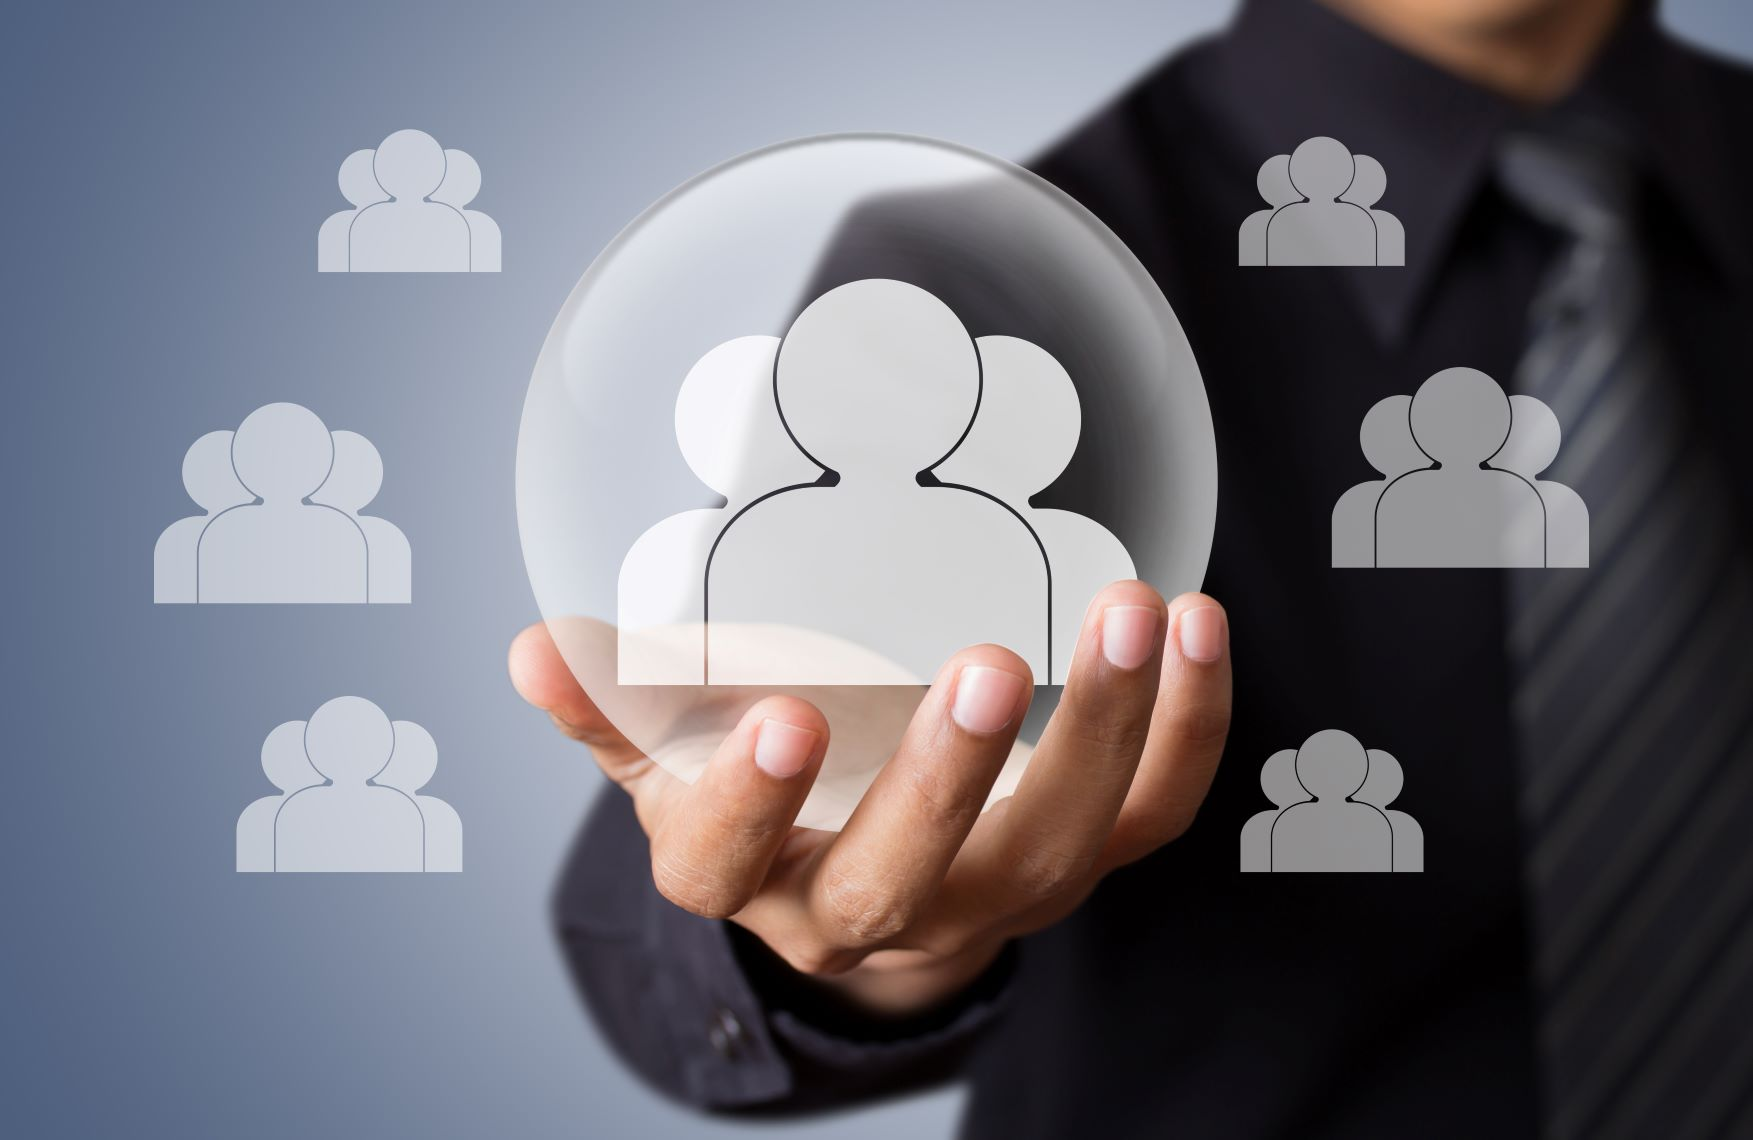 man in a dark business suit holding icons of a group of people in a protective bubble